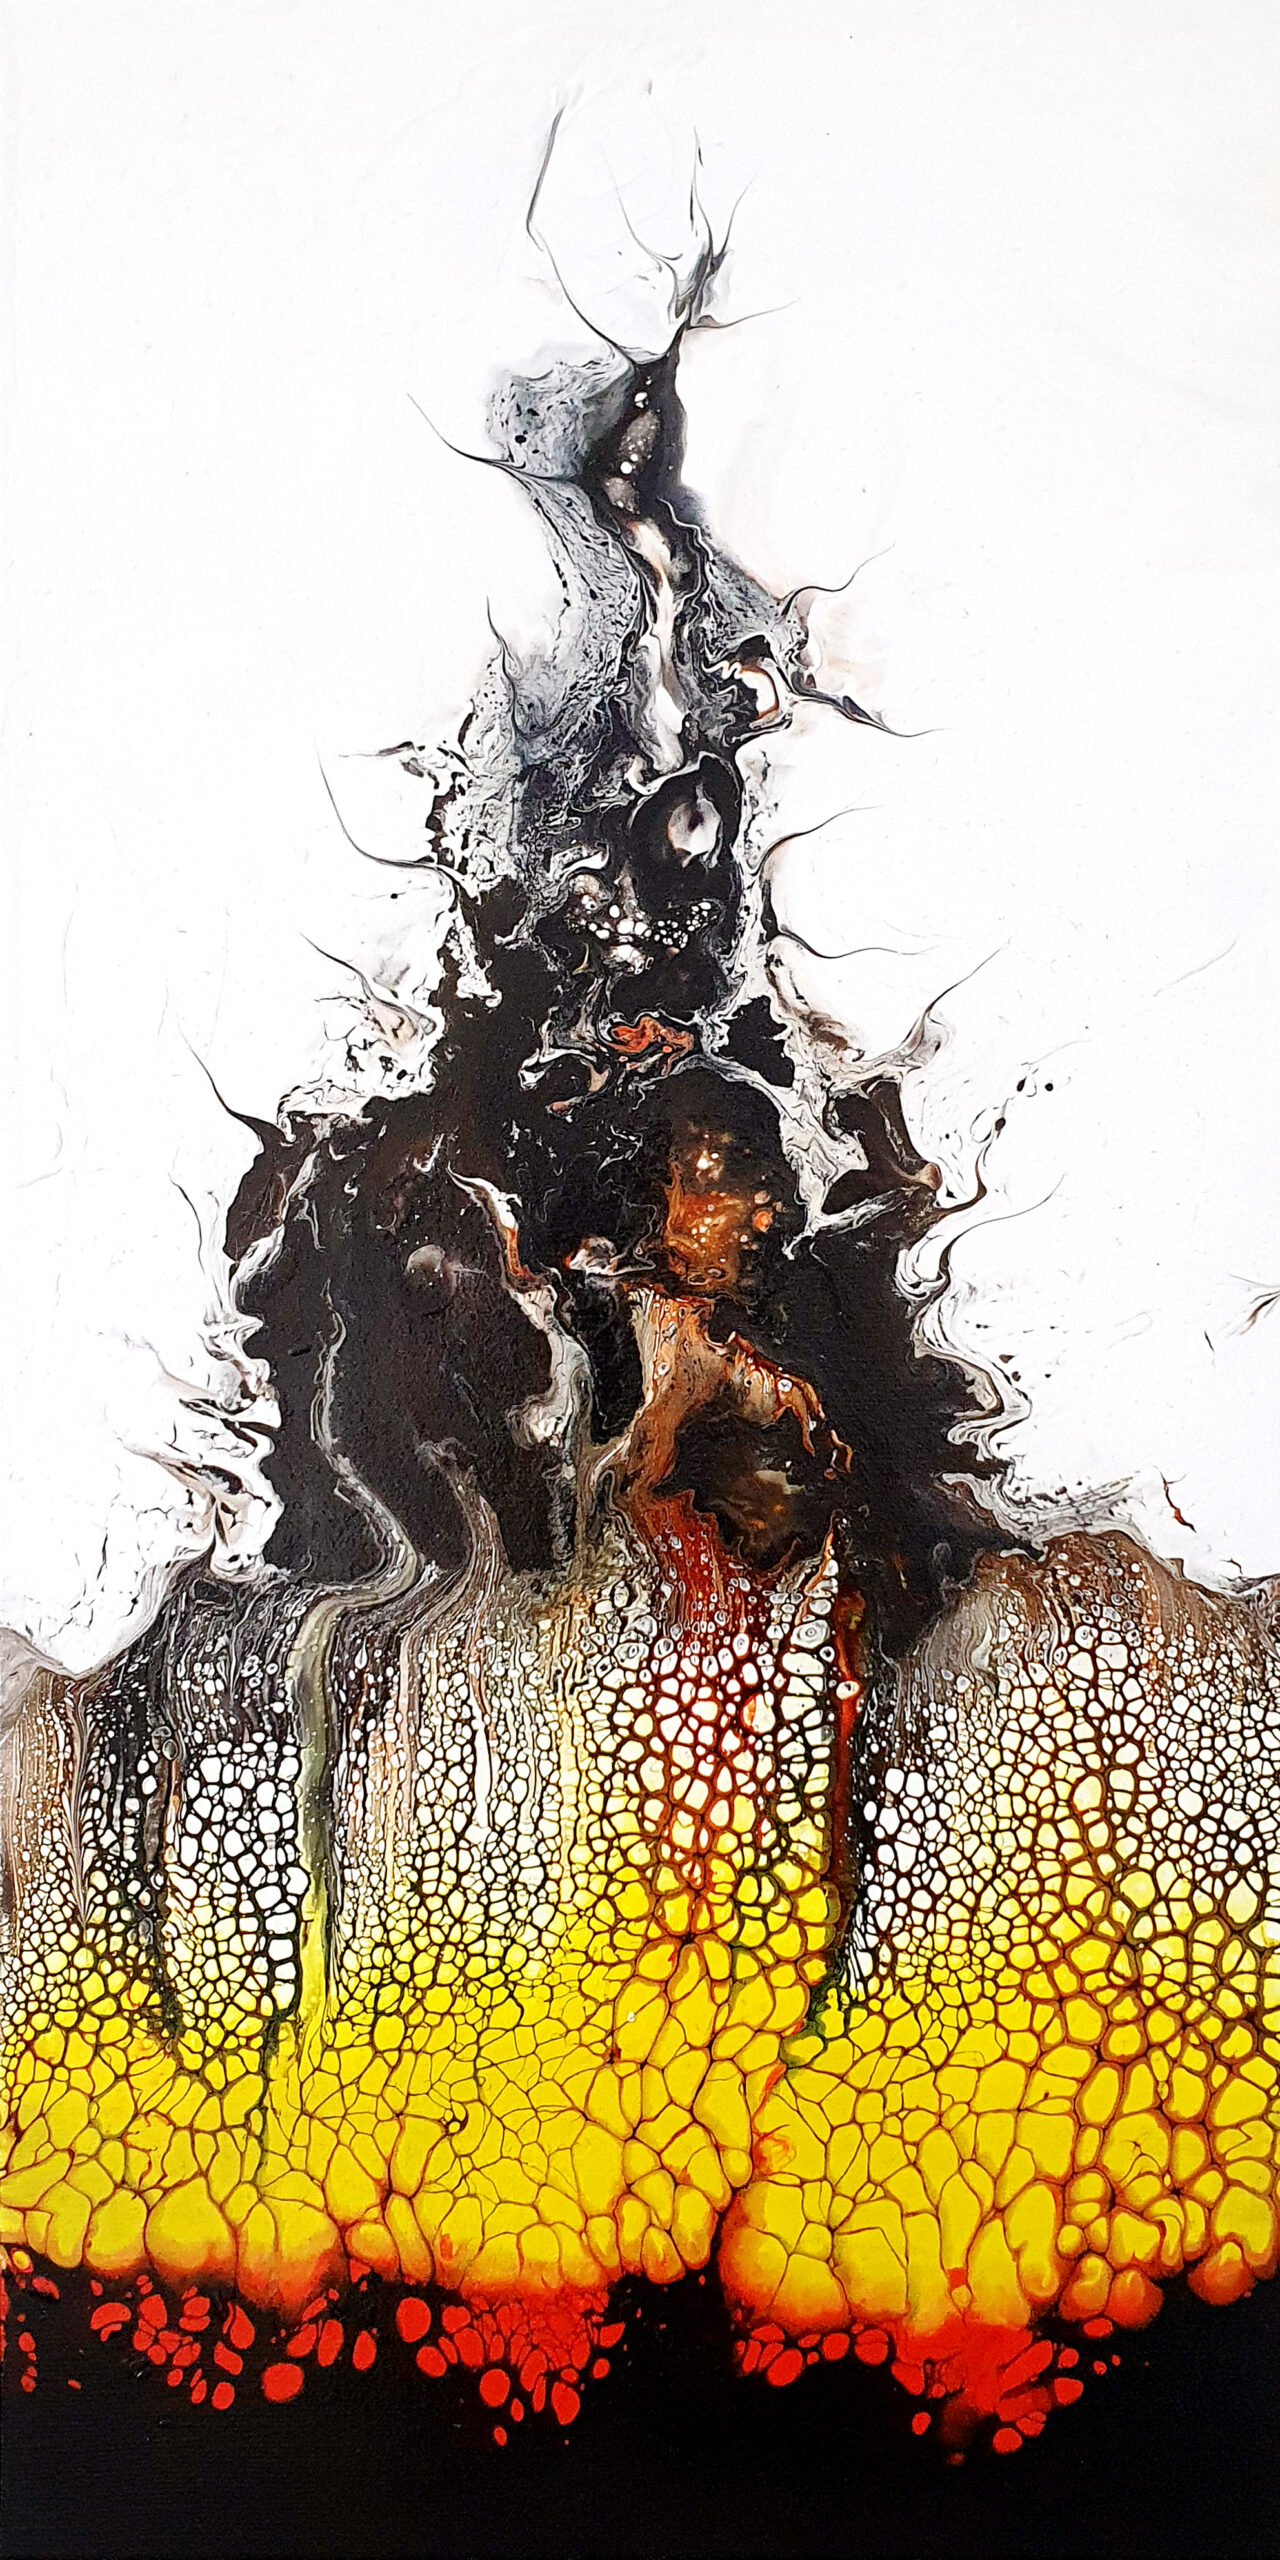 """""""Aufbruch"""", acrylic pouring by Calla Hueppe, Claudie Hamburg, Claudie Hüppe"""